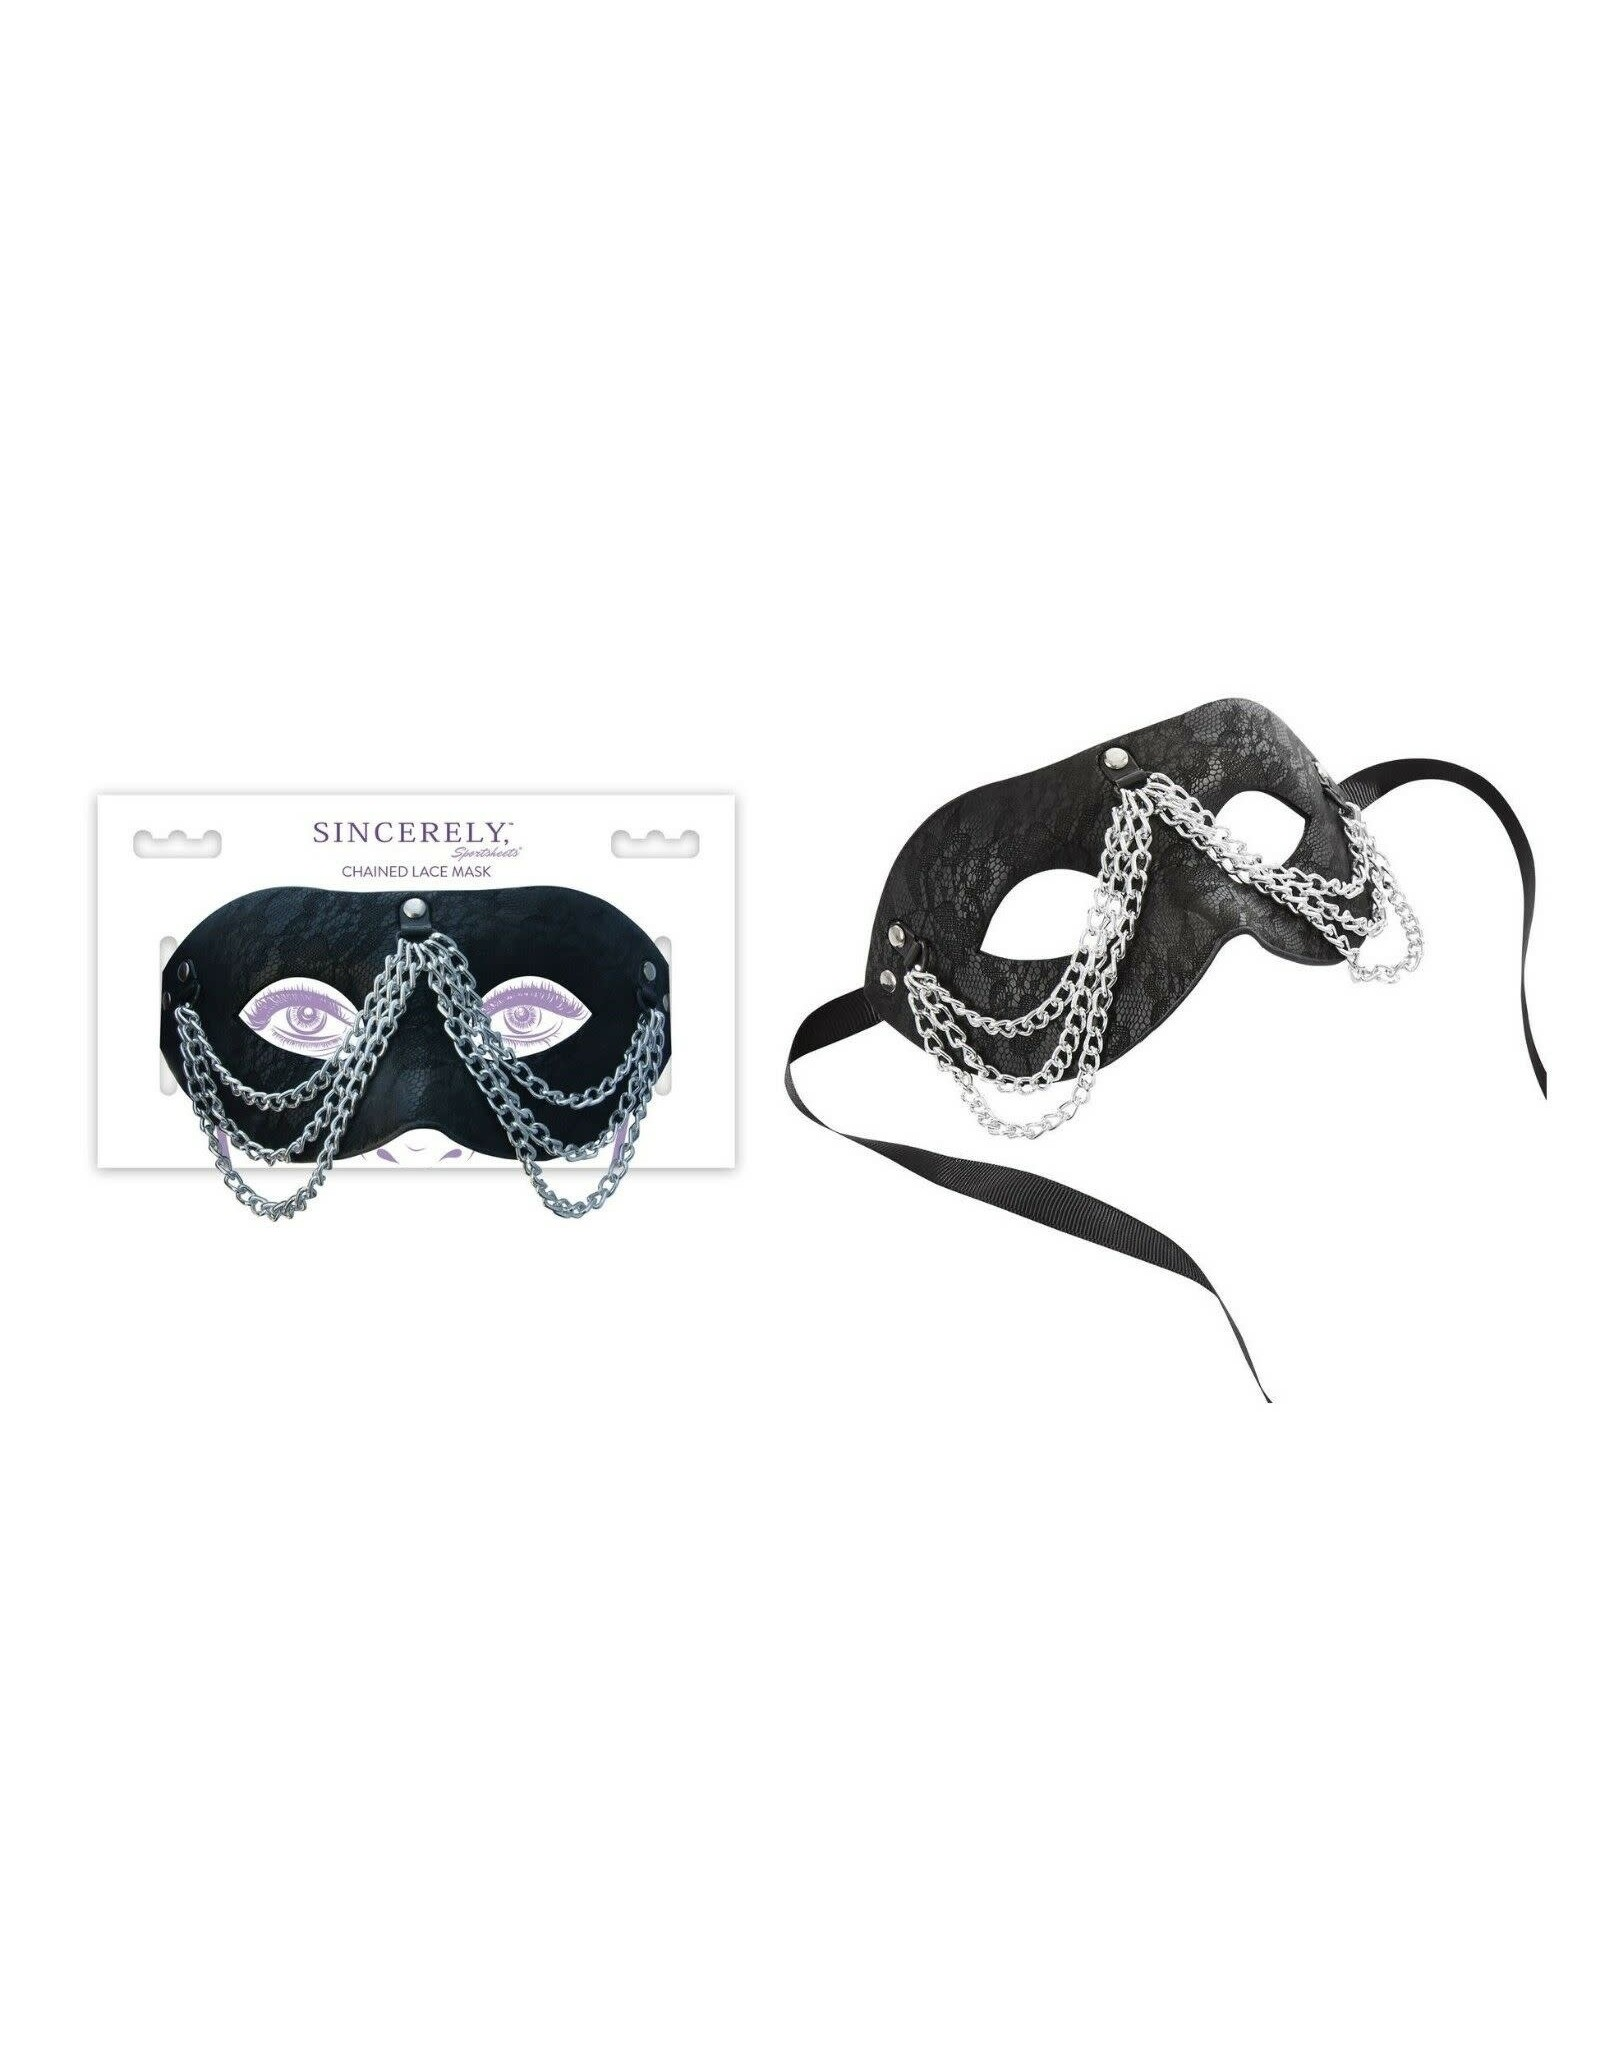 SINCERELY - CHAINED LACE MASK